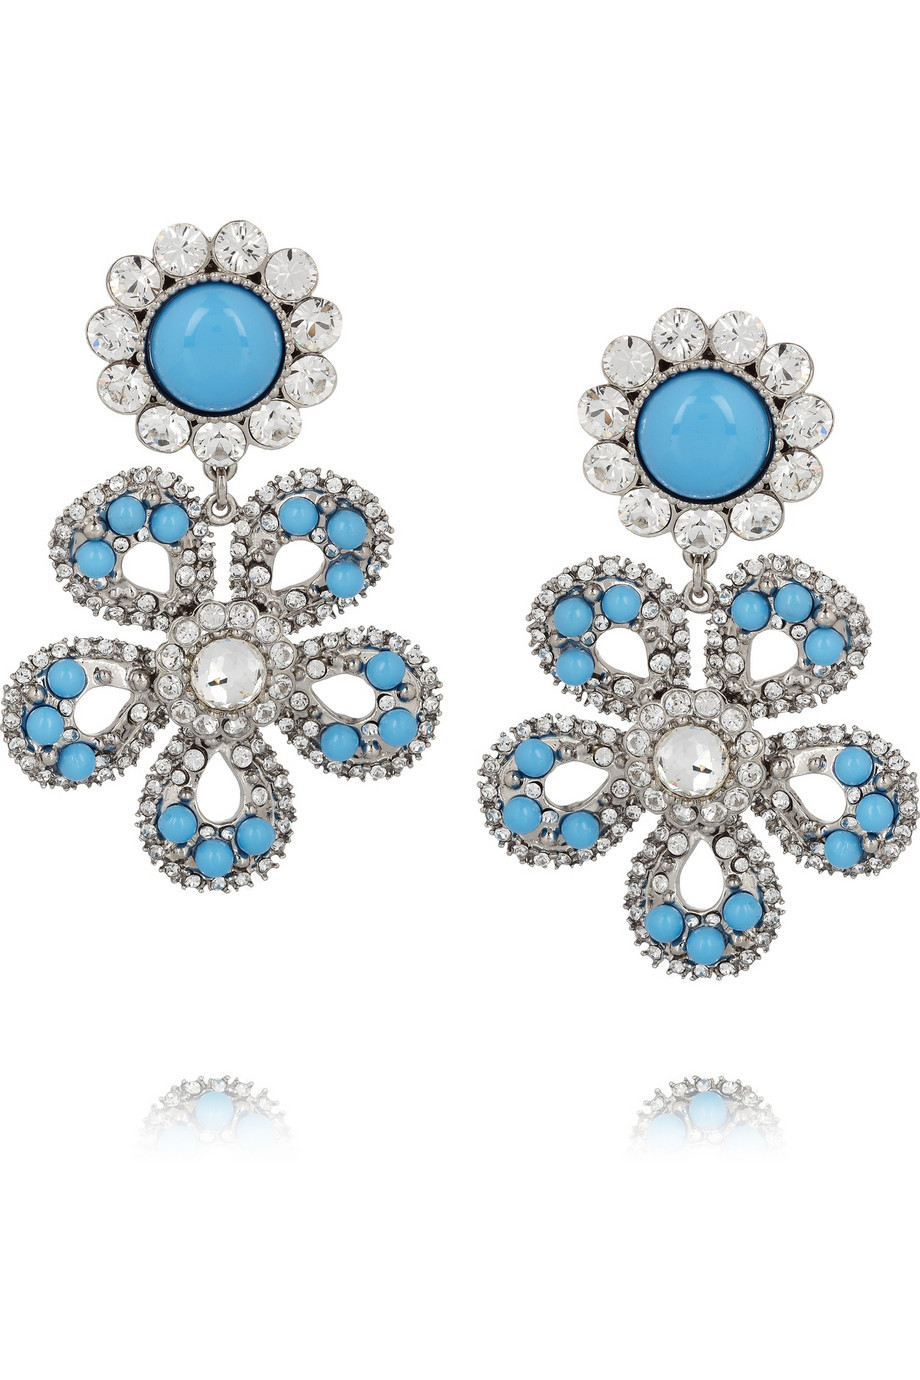 Miu-miu-bridal-earrings-something-blue.full